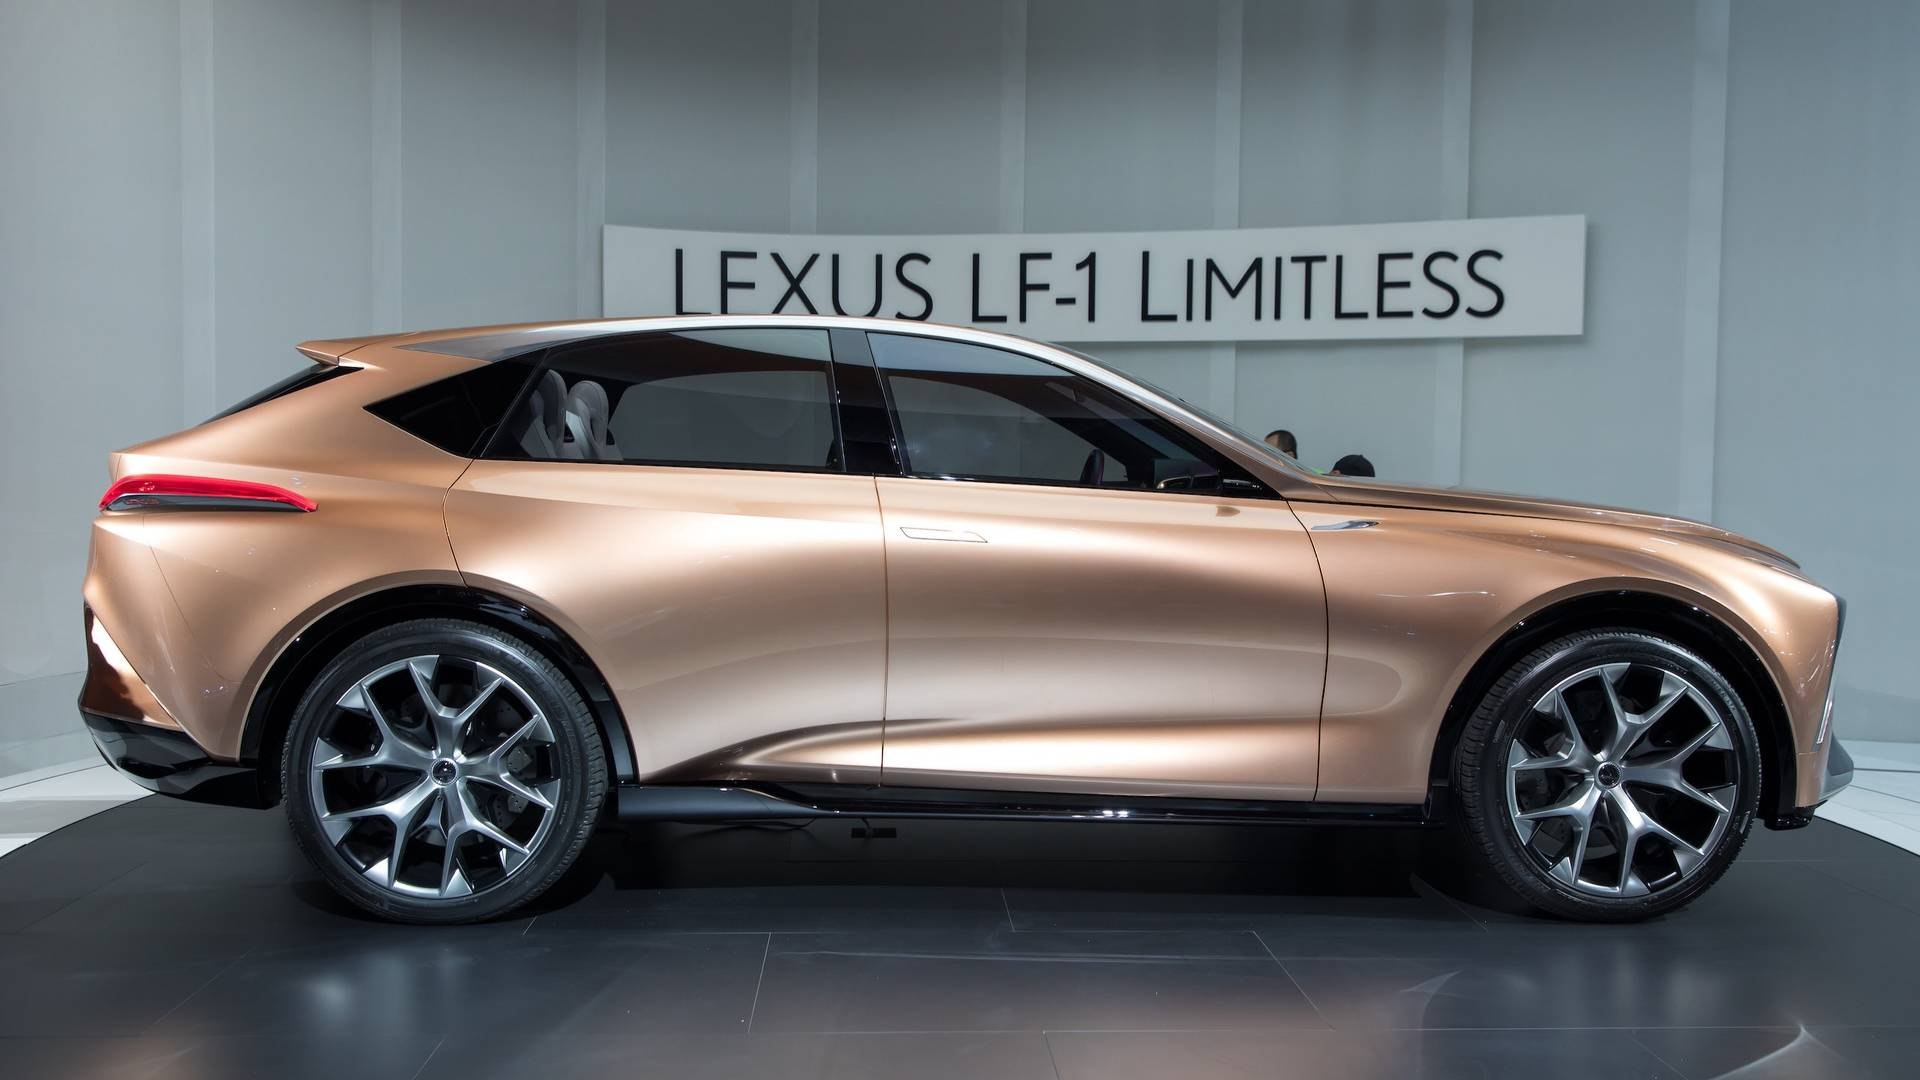 Lexus Working On 611 Horse Suv To Rival Lamborghini Urus